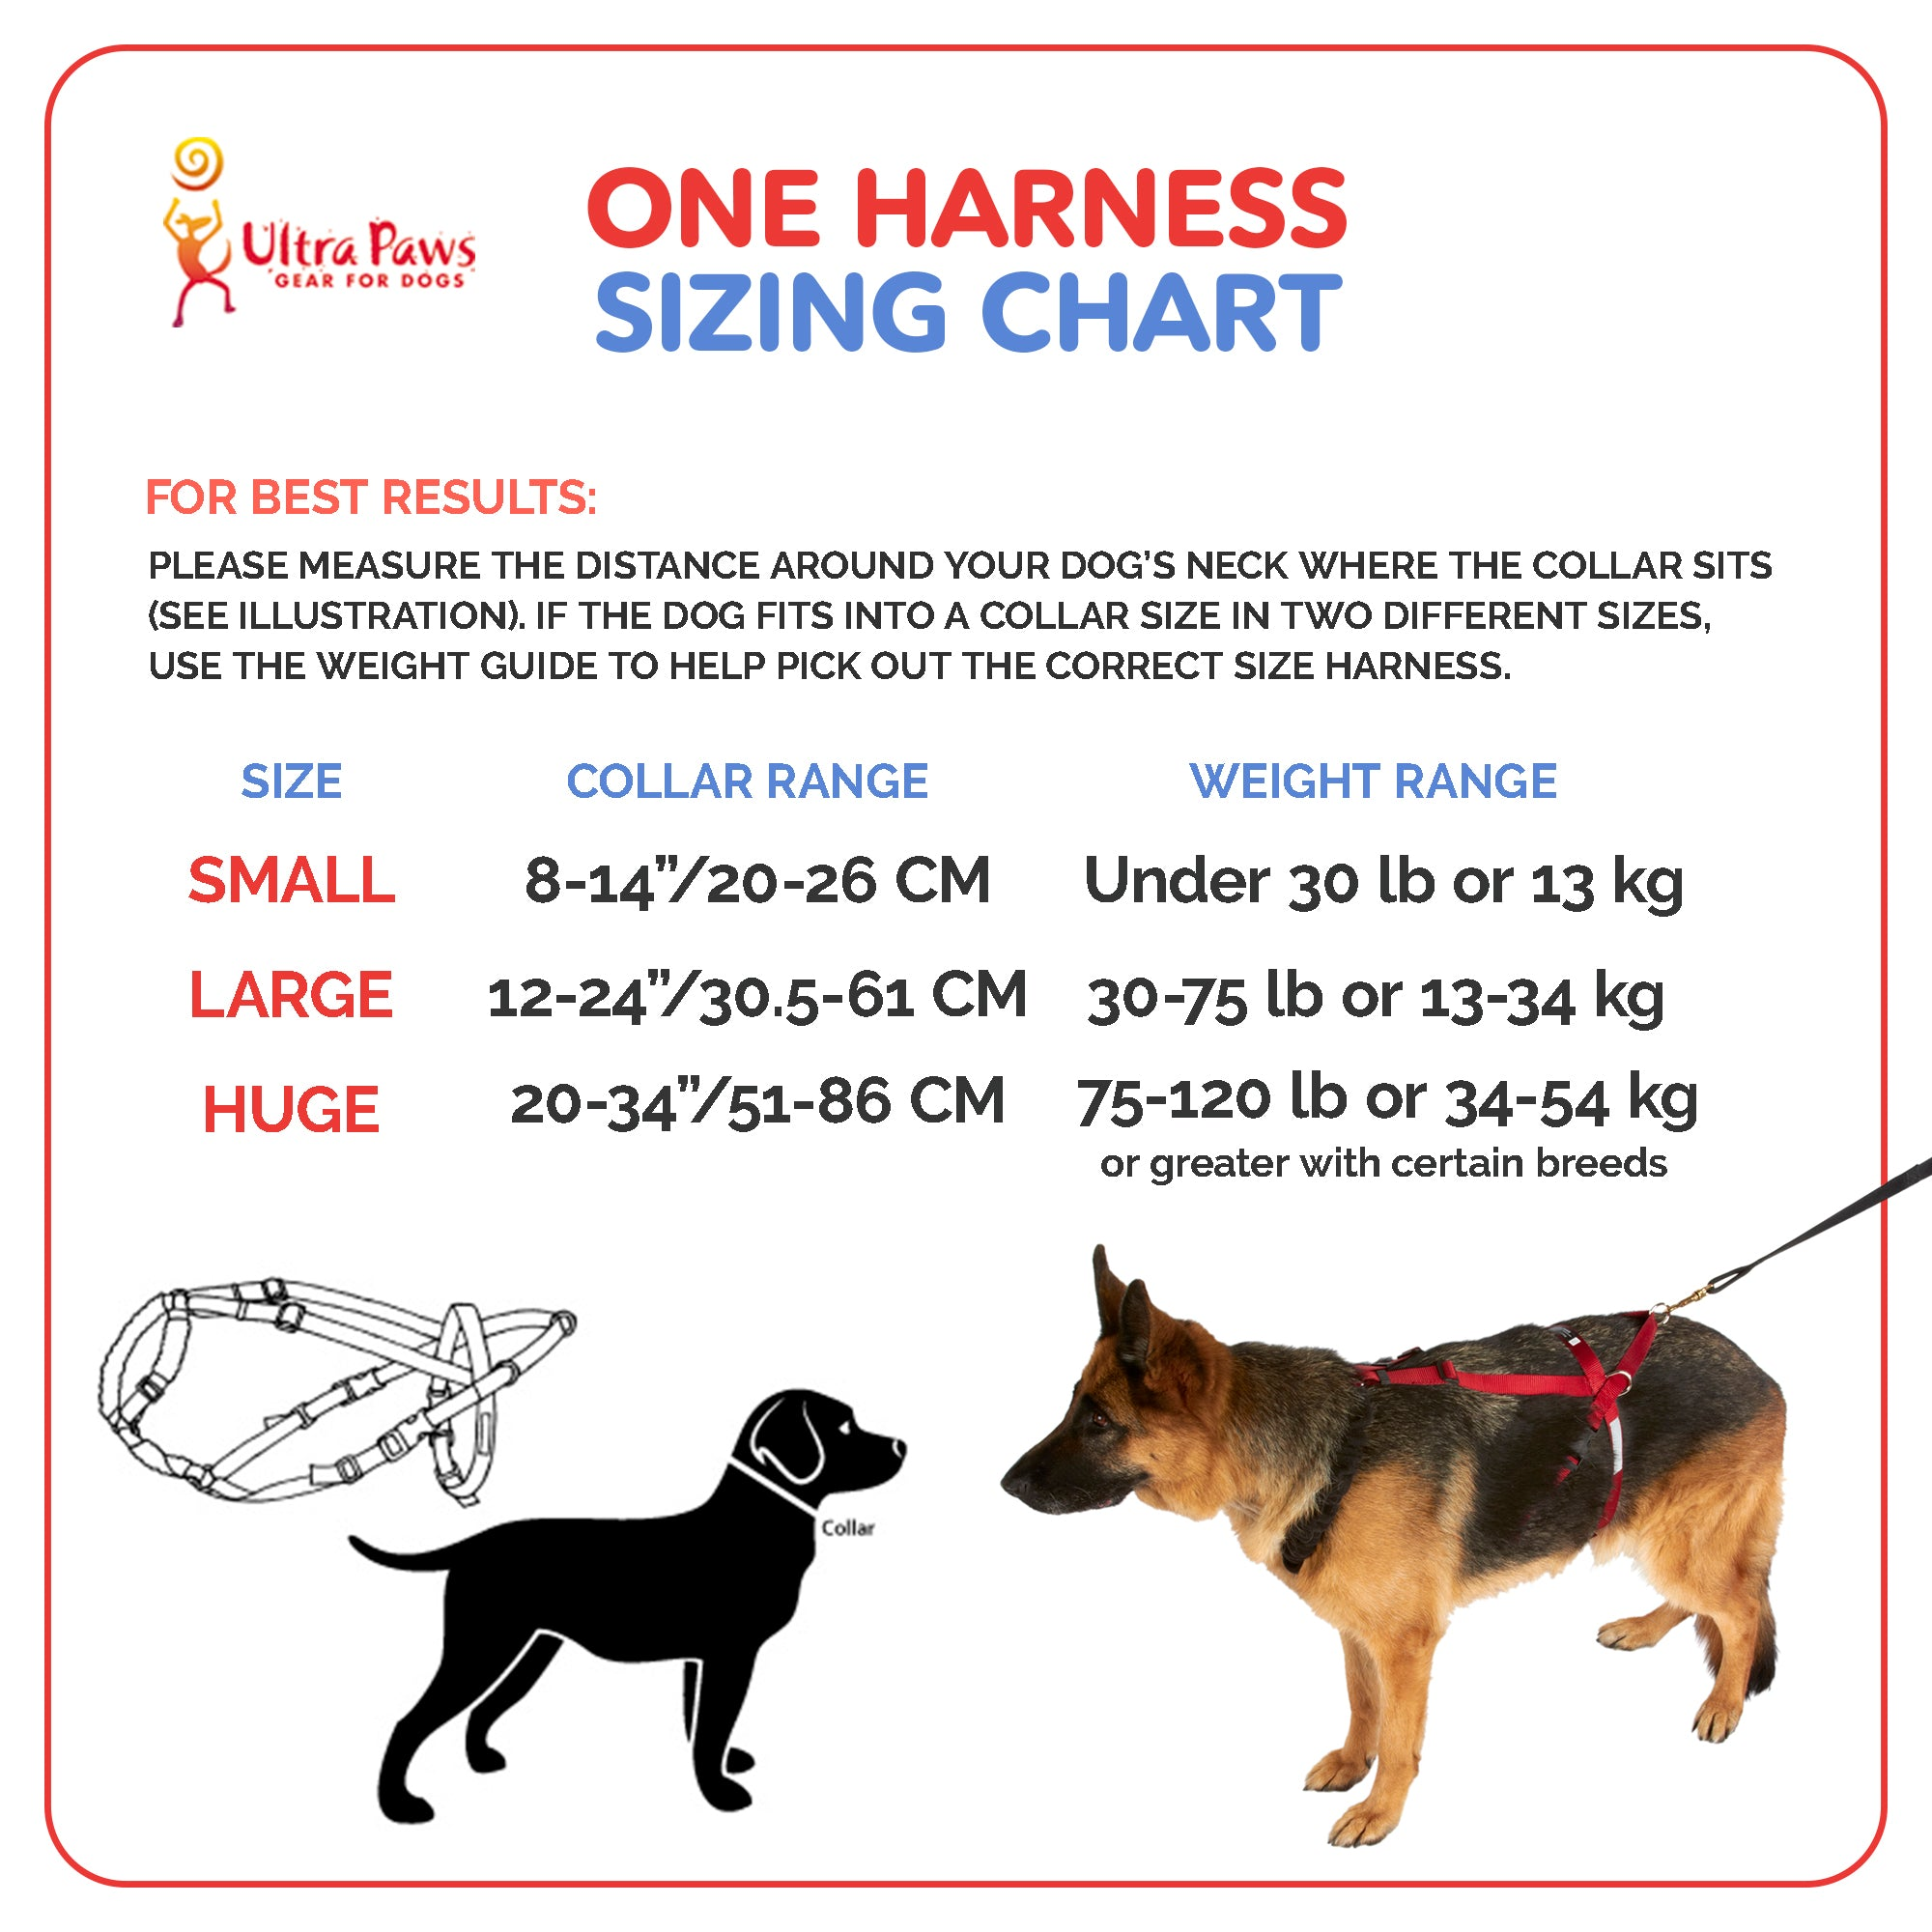 Ultra Paws One Harness Sizing Guide